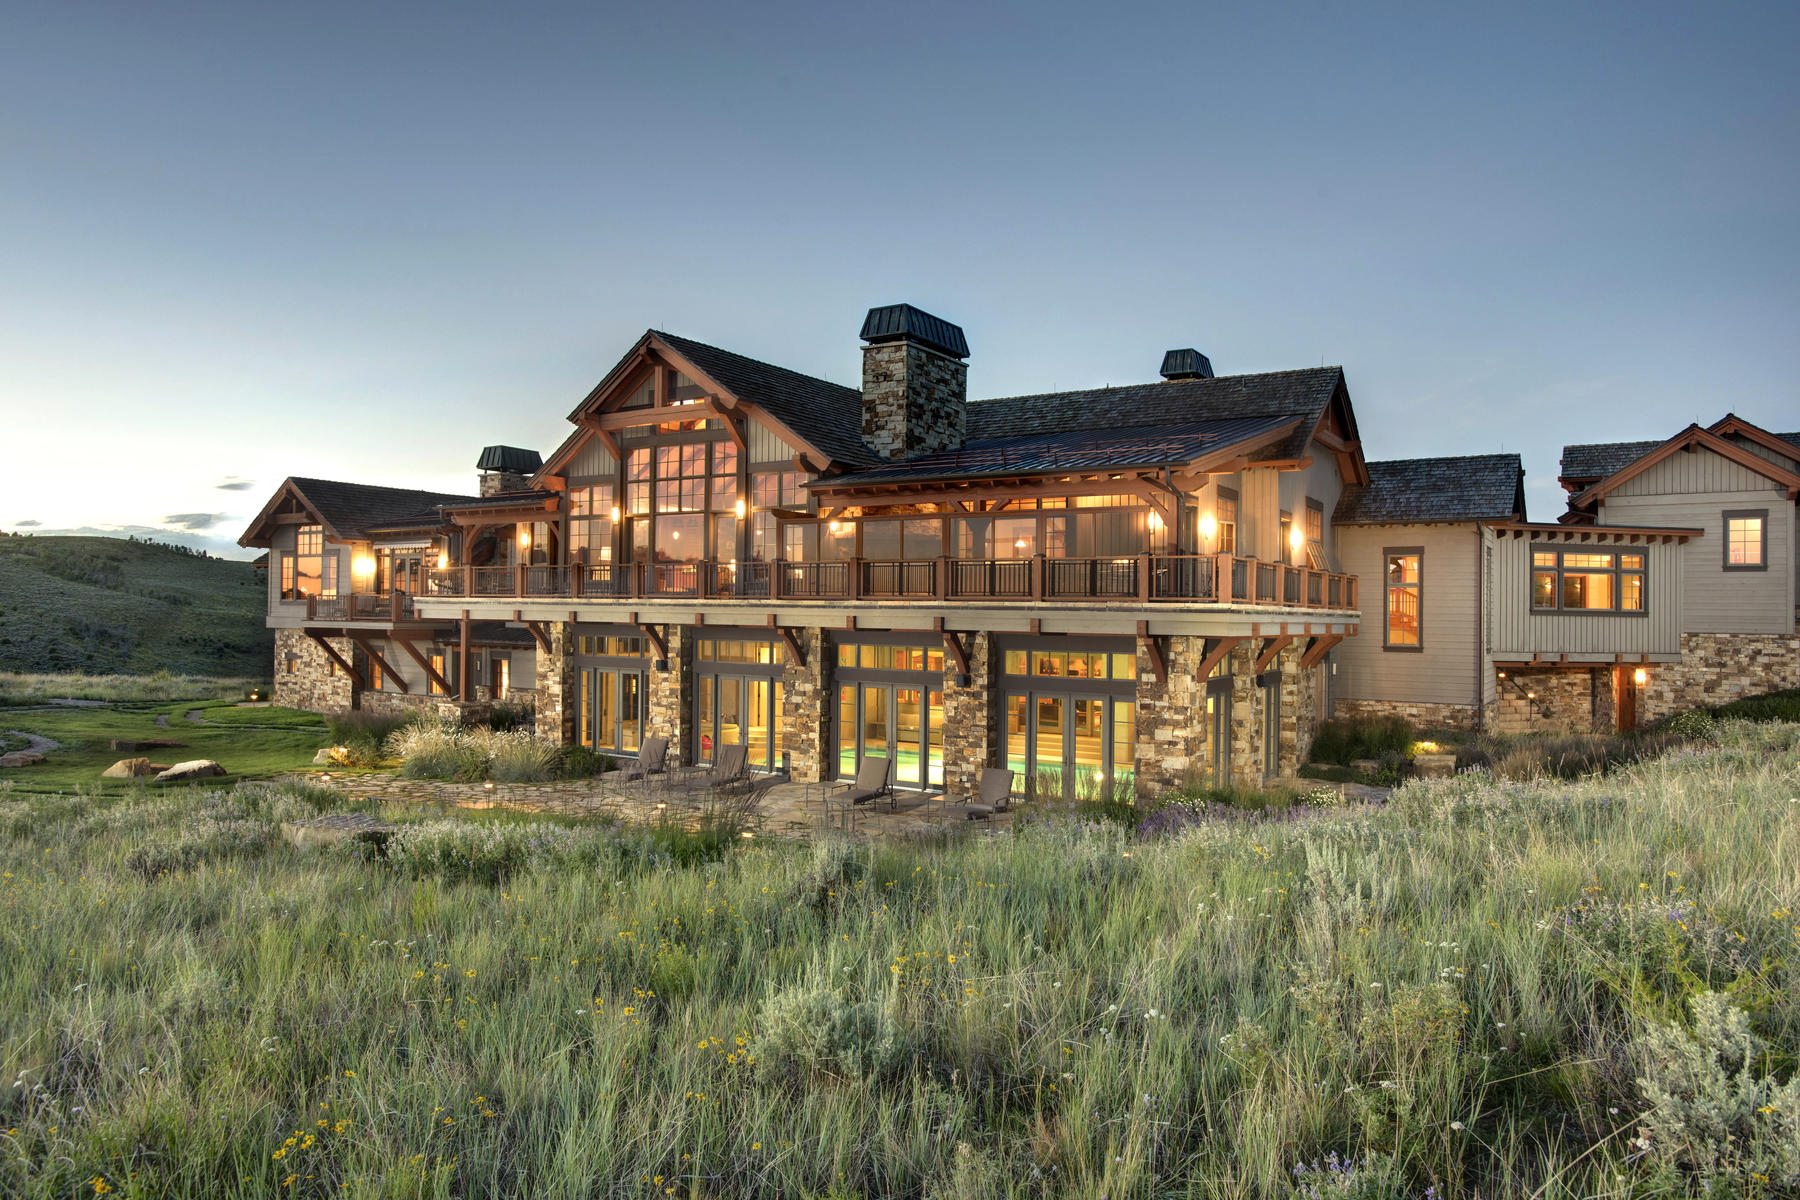 Single Family Home for Active at Mountain Modern Ranch 318 Kicking Horse Trl Edwards, Colorado 81632 United States